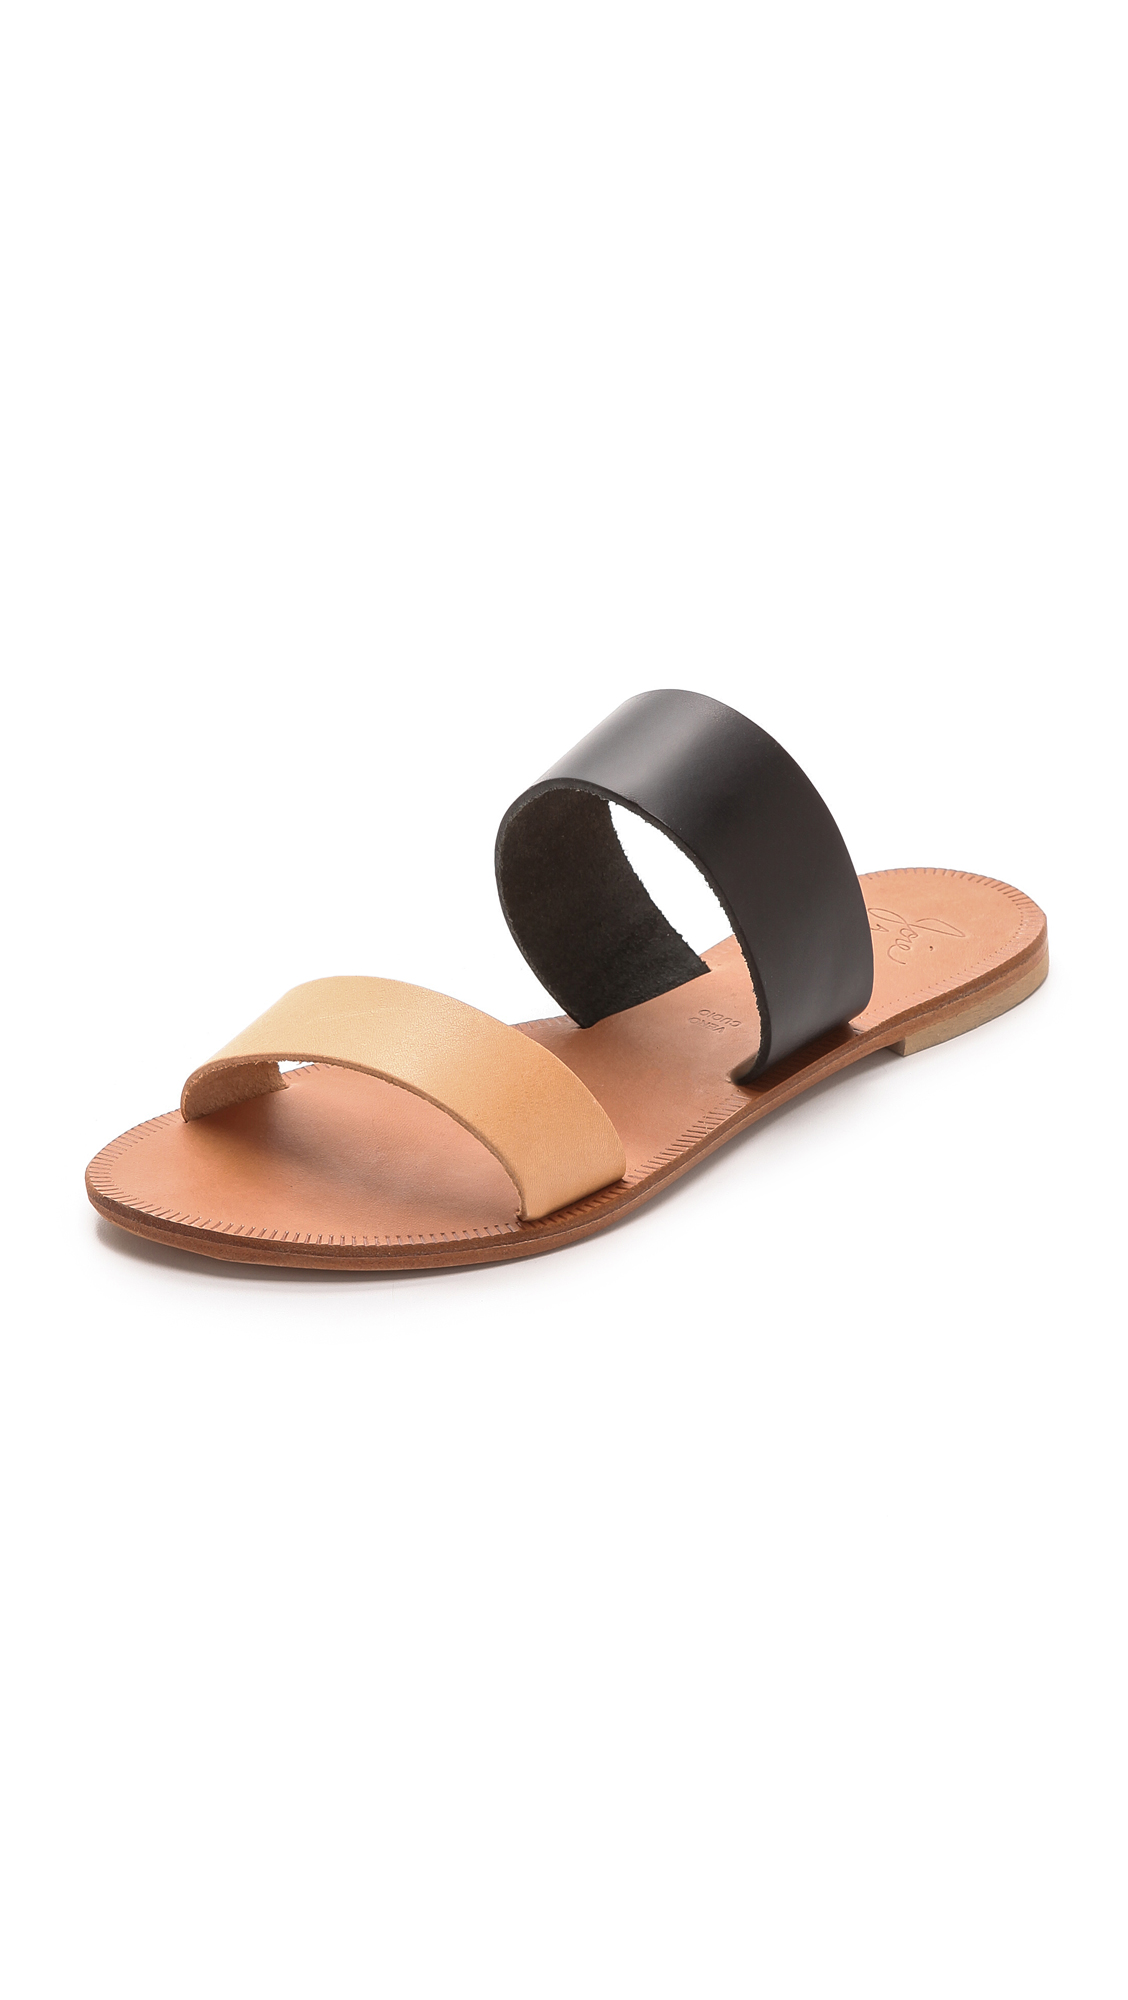 Photo of Joie A La Plage Sable Two Band Sandals Black-Natural - Joie online